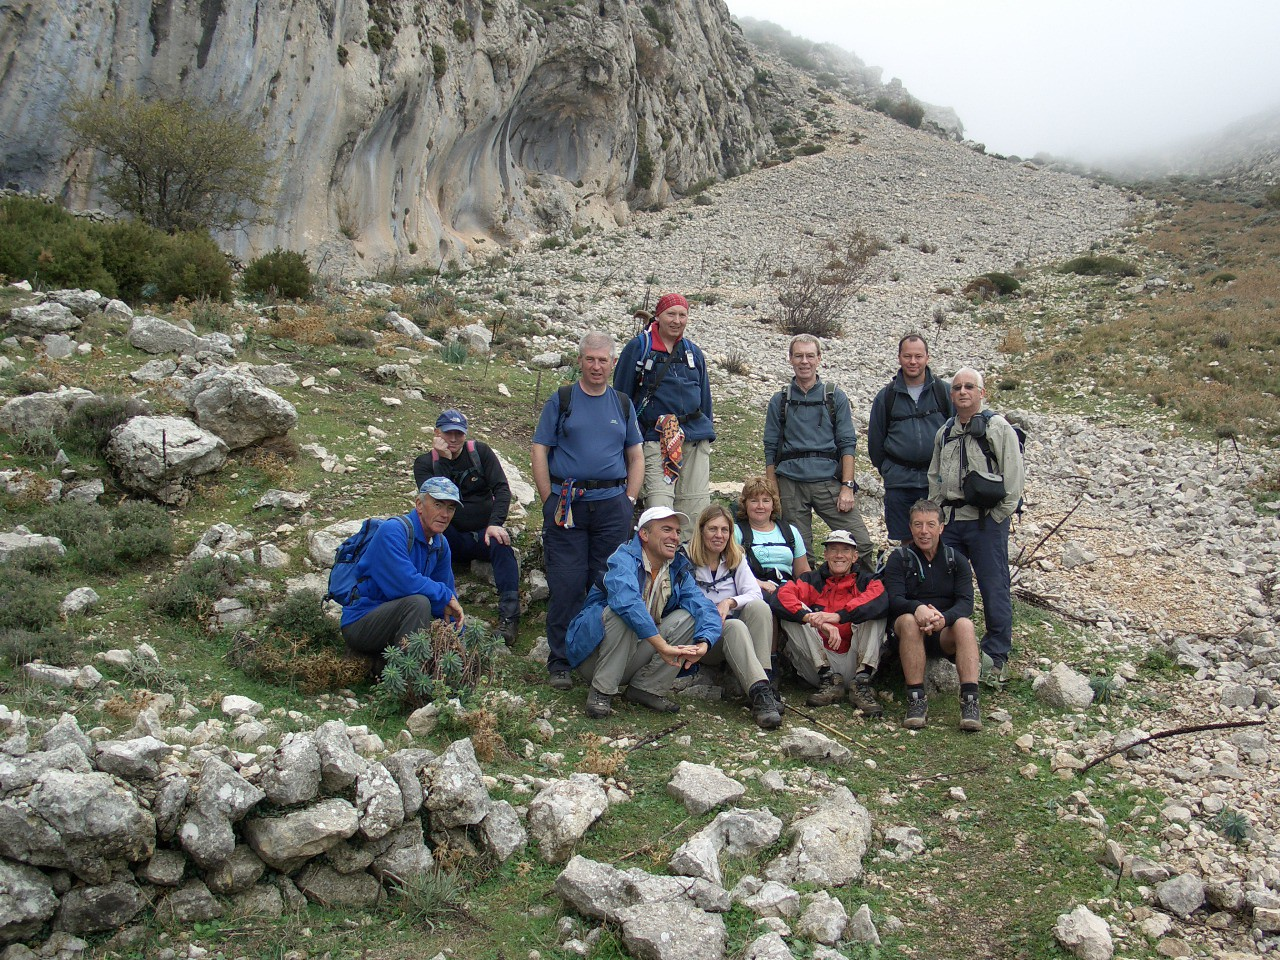 With the 40's Walkers on Malla del Llop